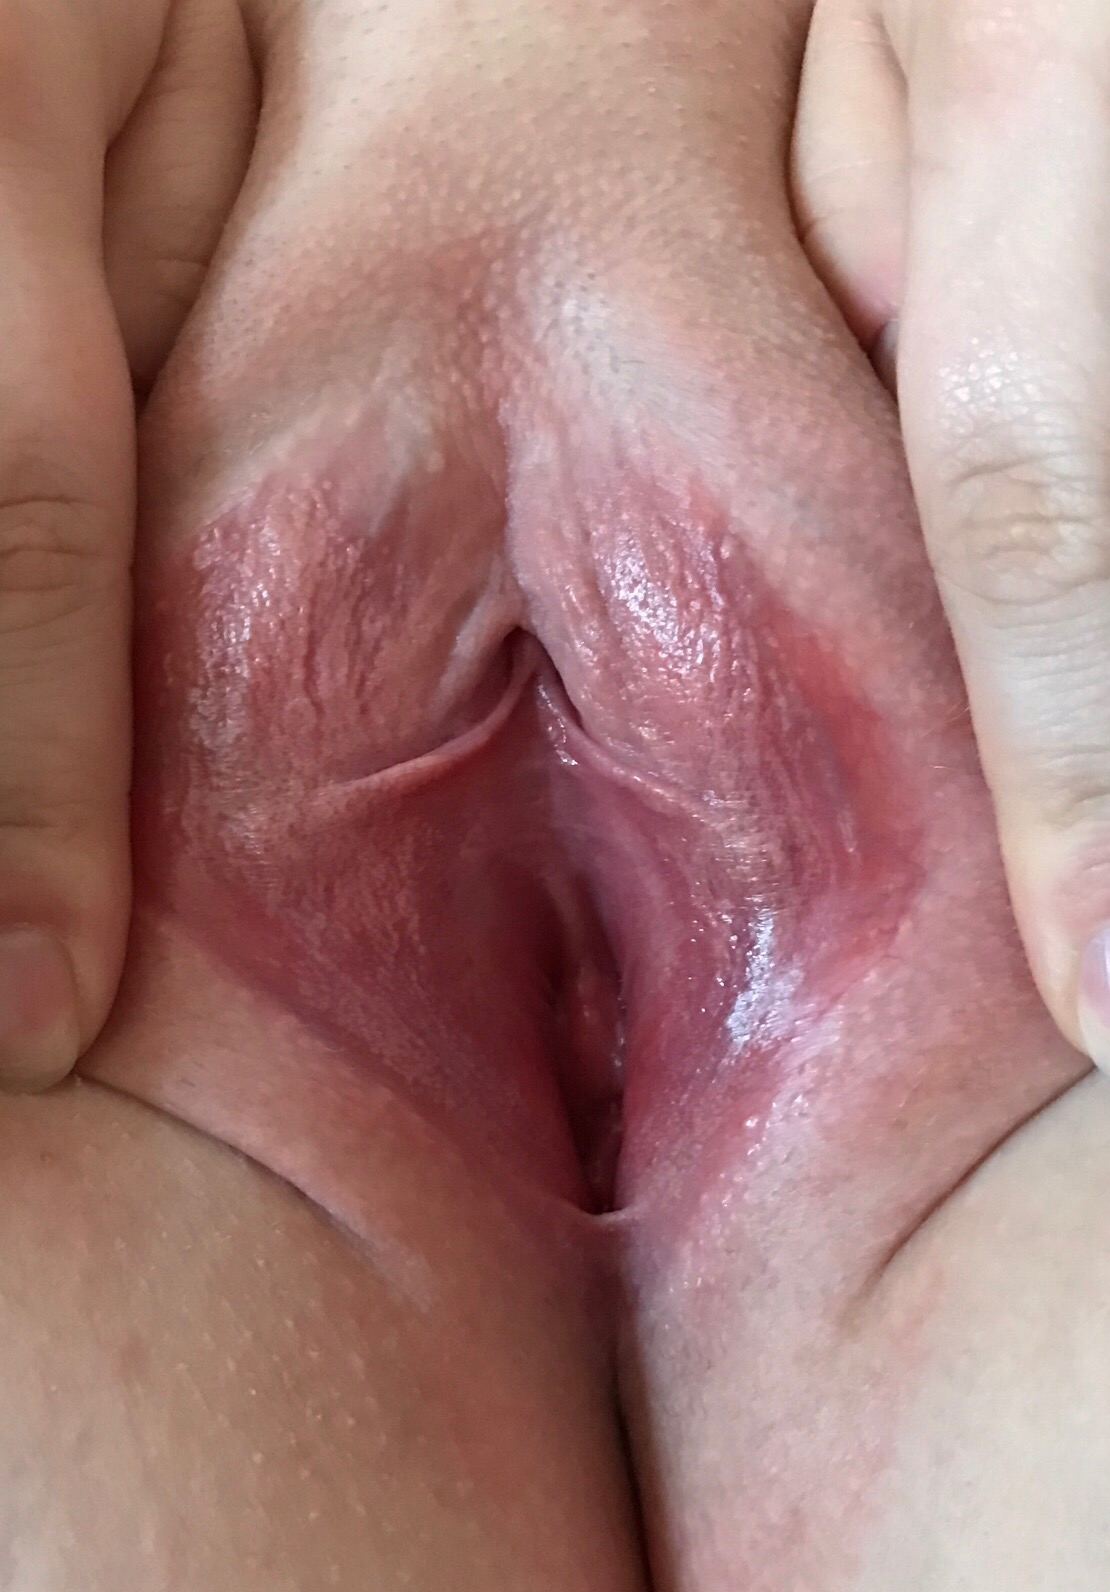 Vaginal itching dryness